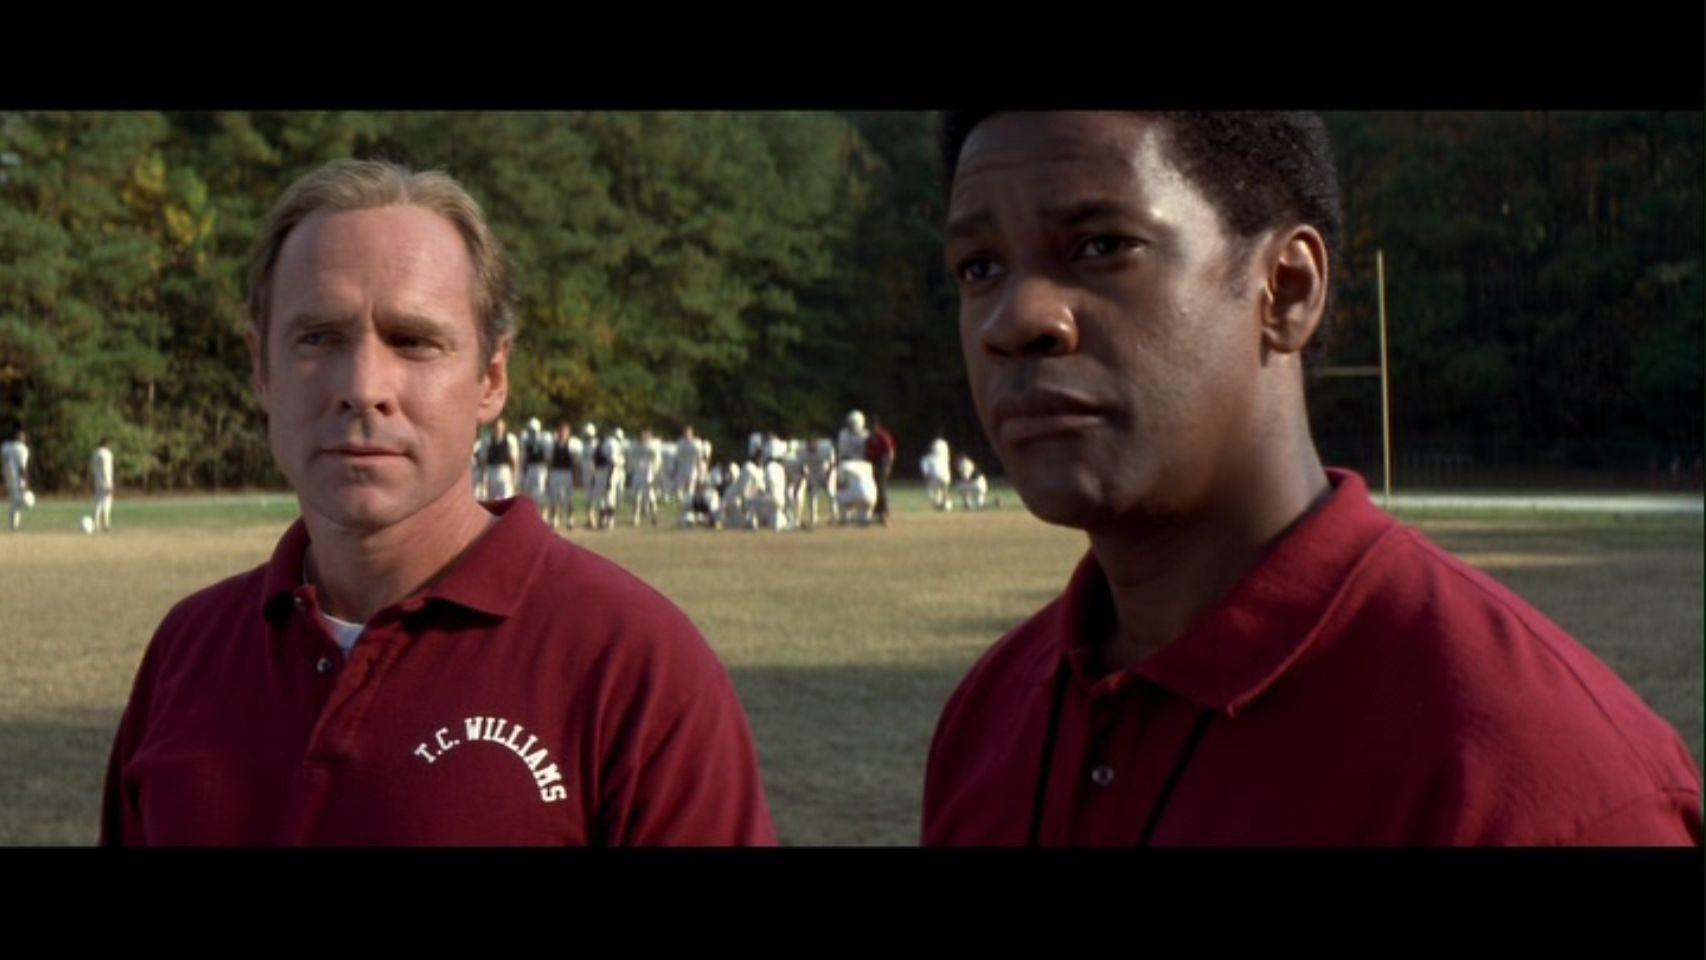 the movie remember the titans brings up the issue of racism in sports Examples of racial prejudice in the film remember the titans are: the way the team acted when they found out that yost had been replaced with a black man the team refused to play for a black.